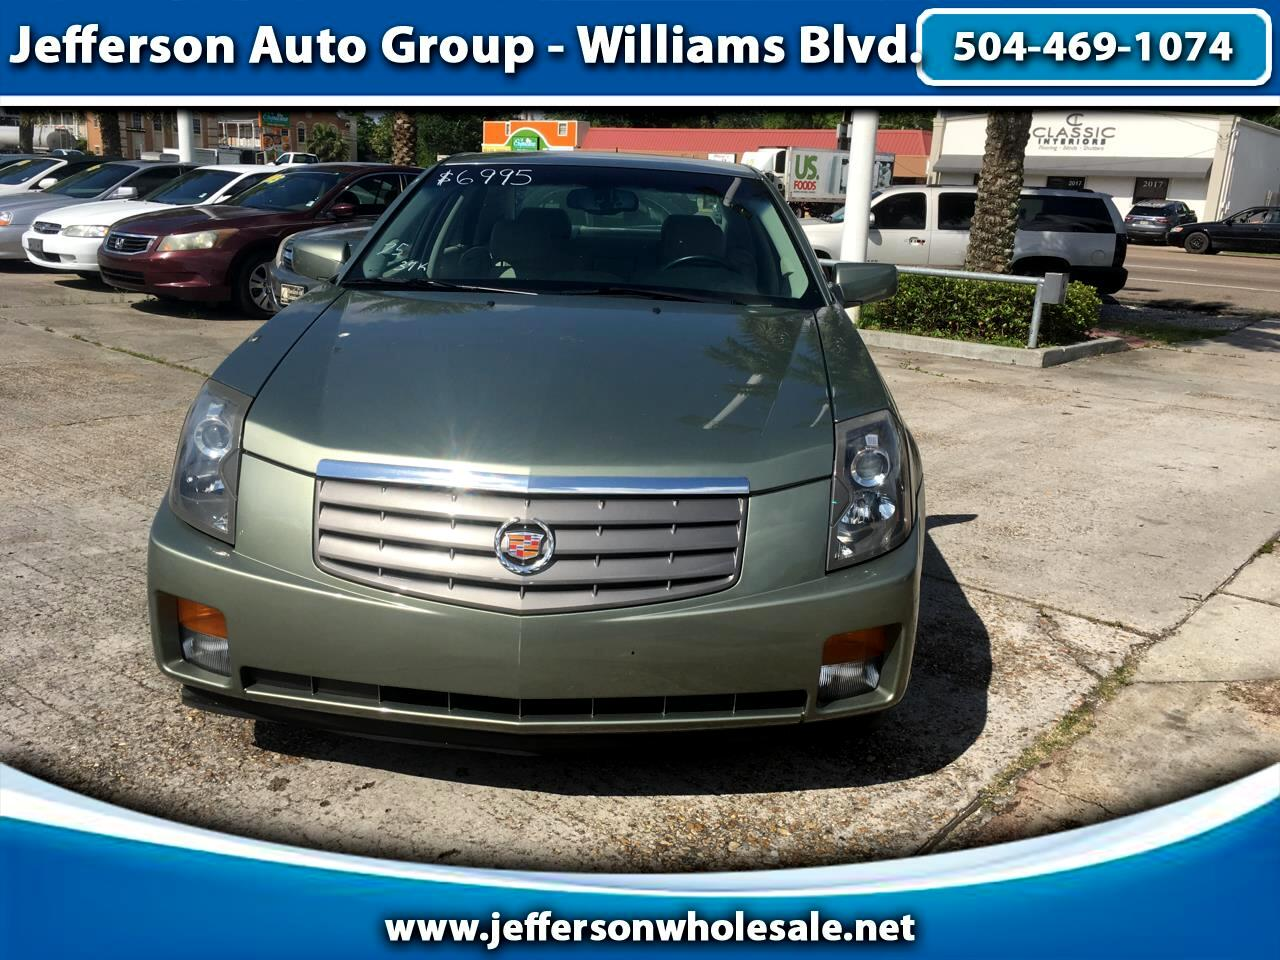 2005 Cadillac CTS 4dr Sdn 3.6L